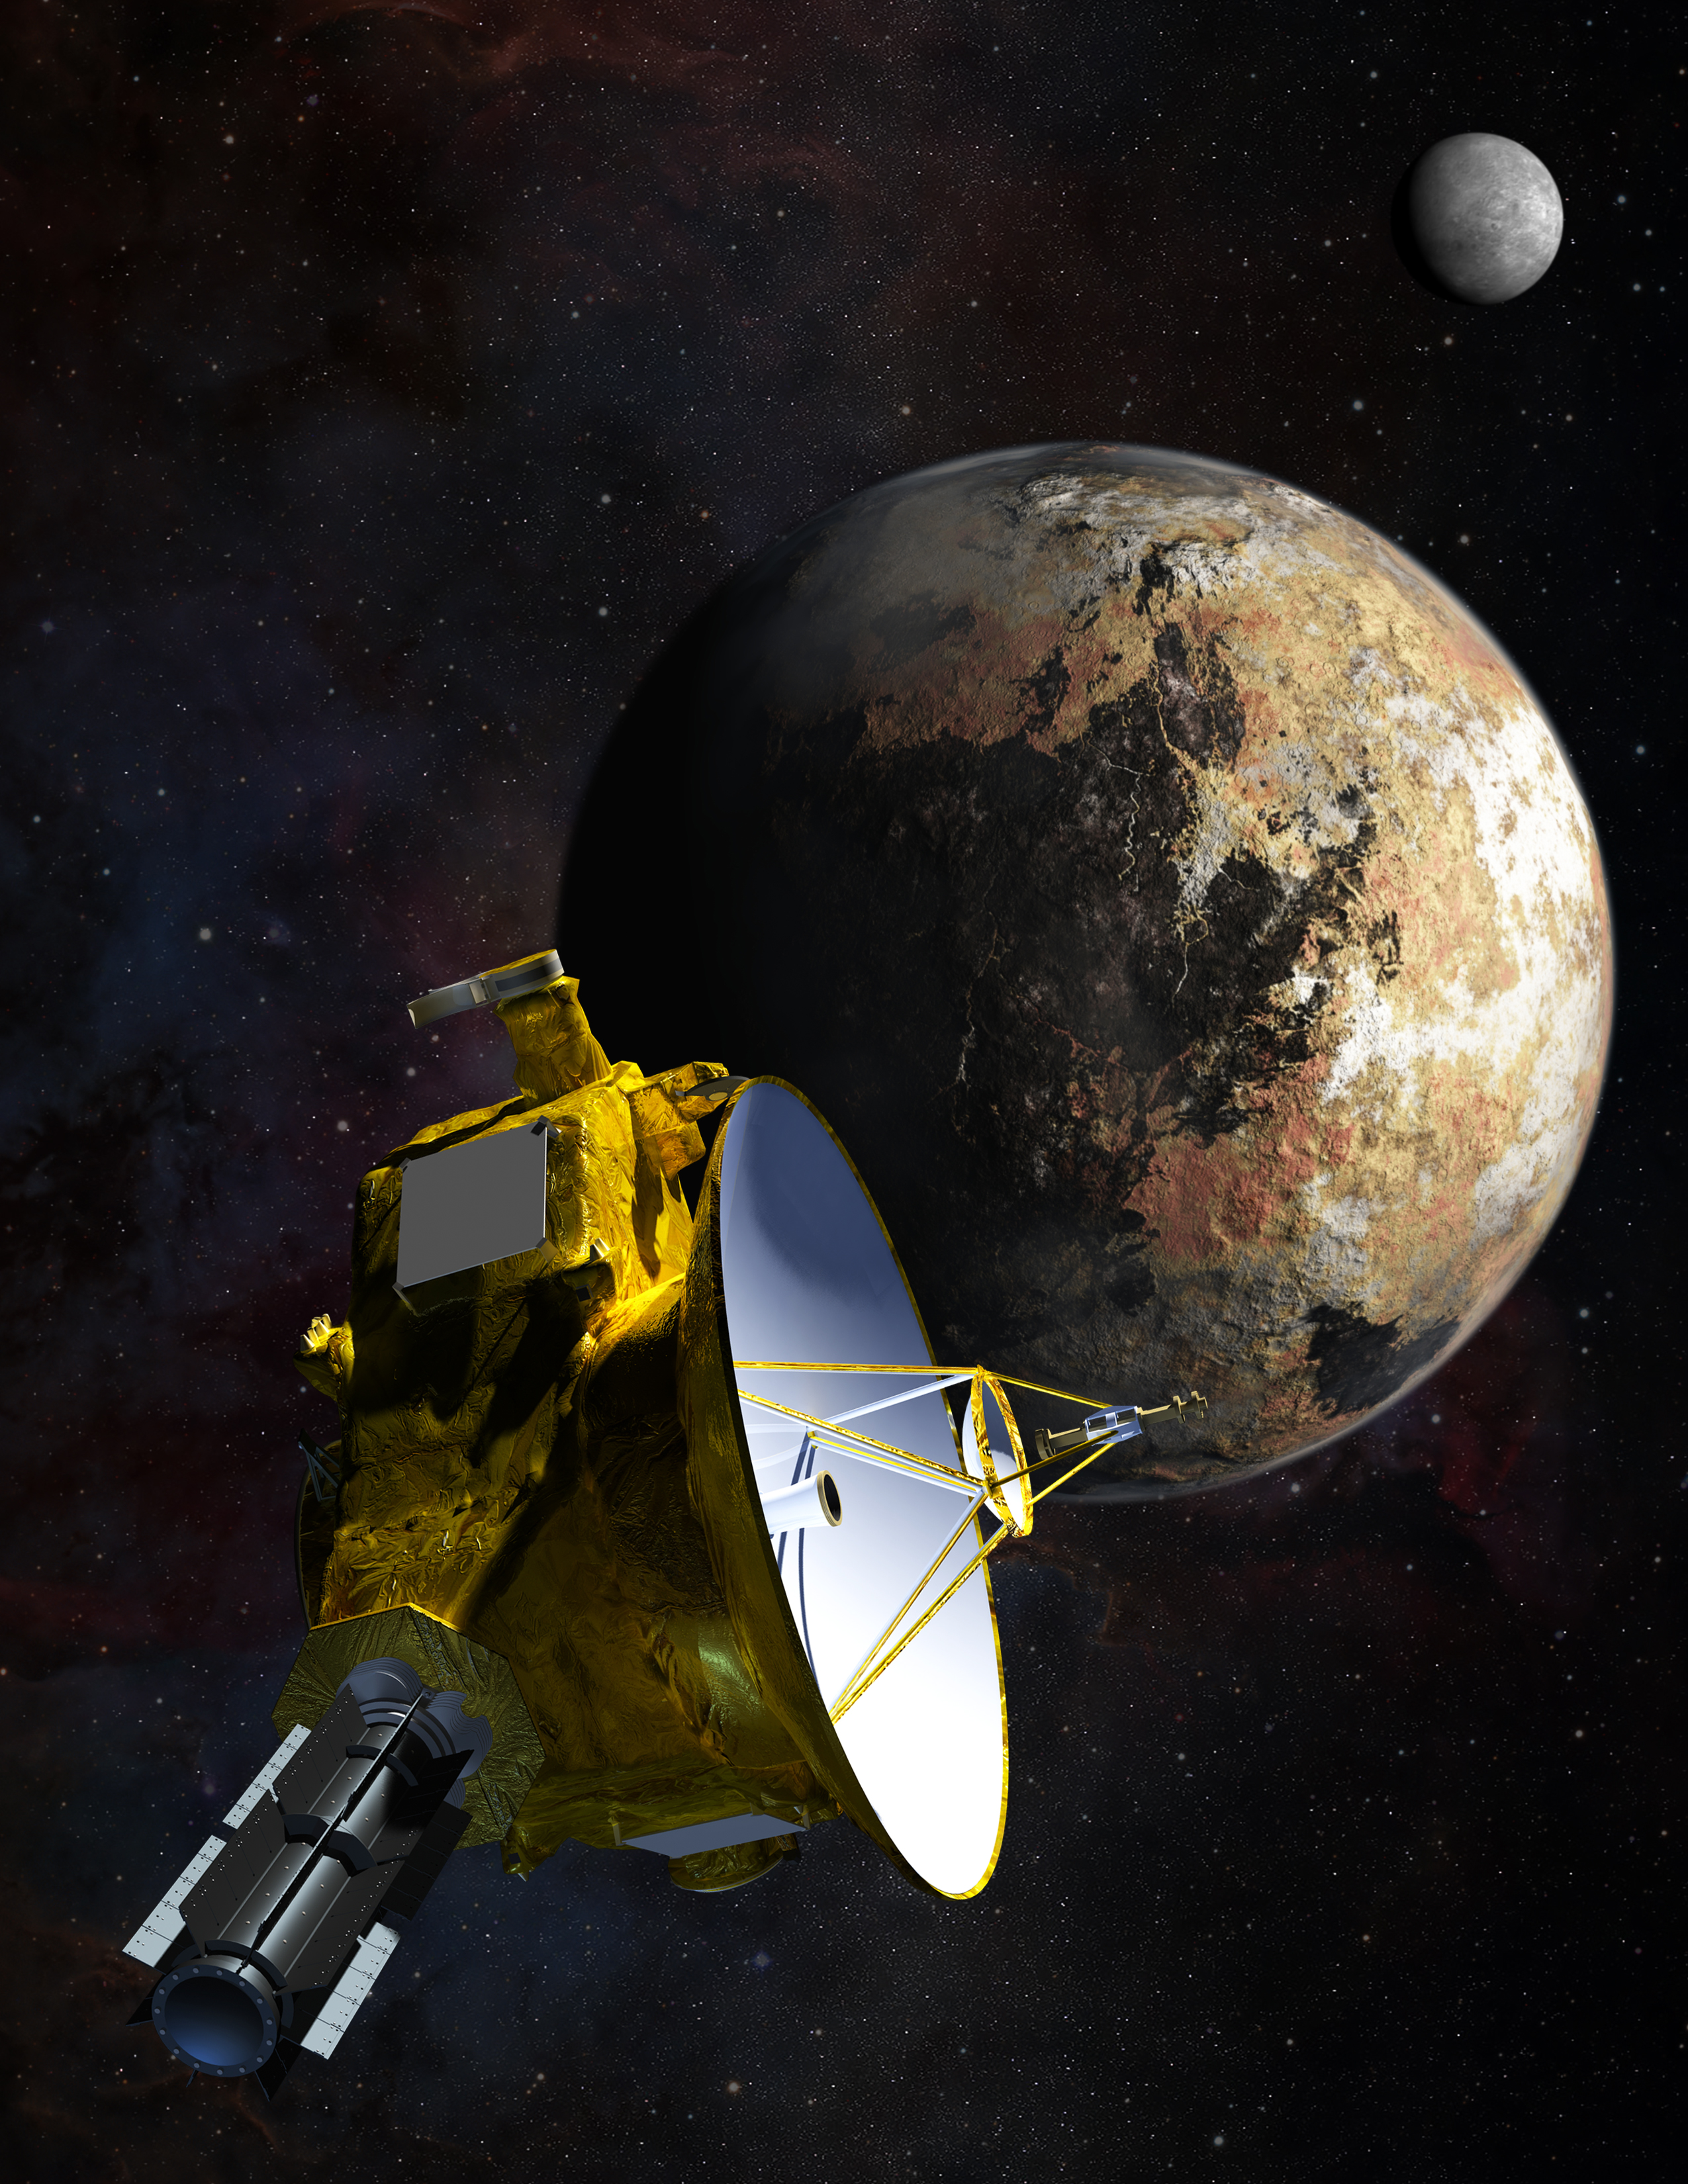 Nh pluto approaches charon